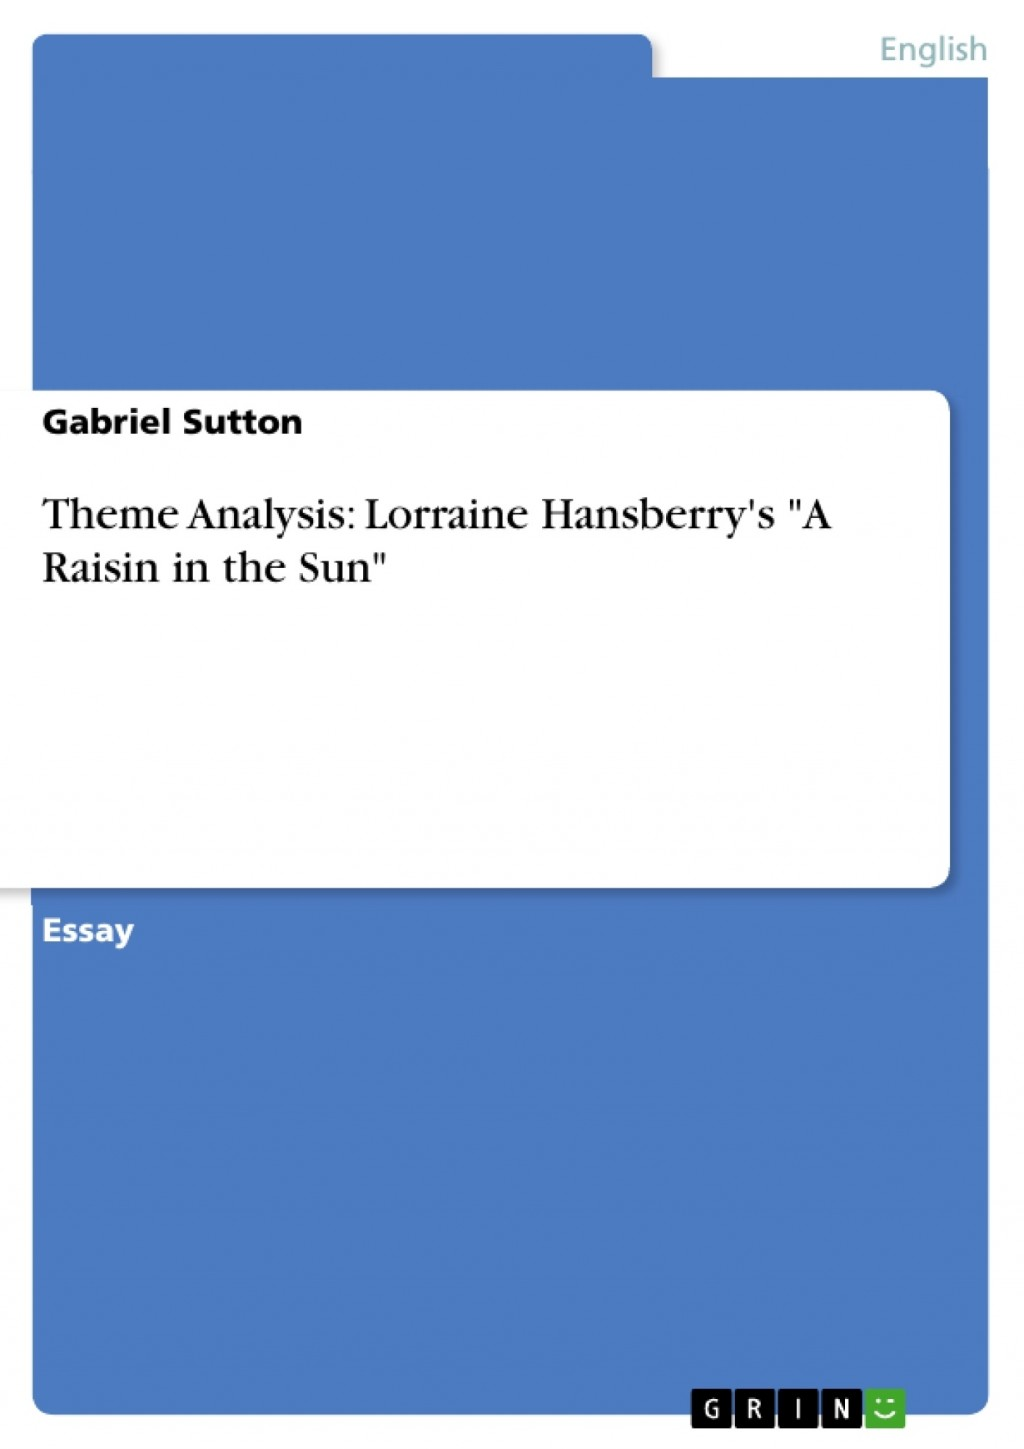 004 Essay Example Raisin In The Sun Themes 198903 0 Beautiful A Theme Analysis Large